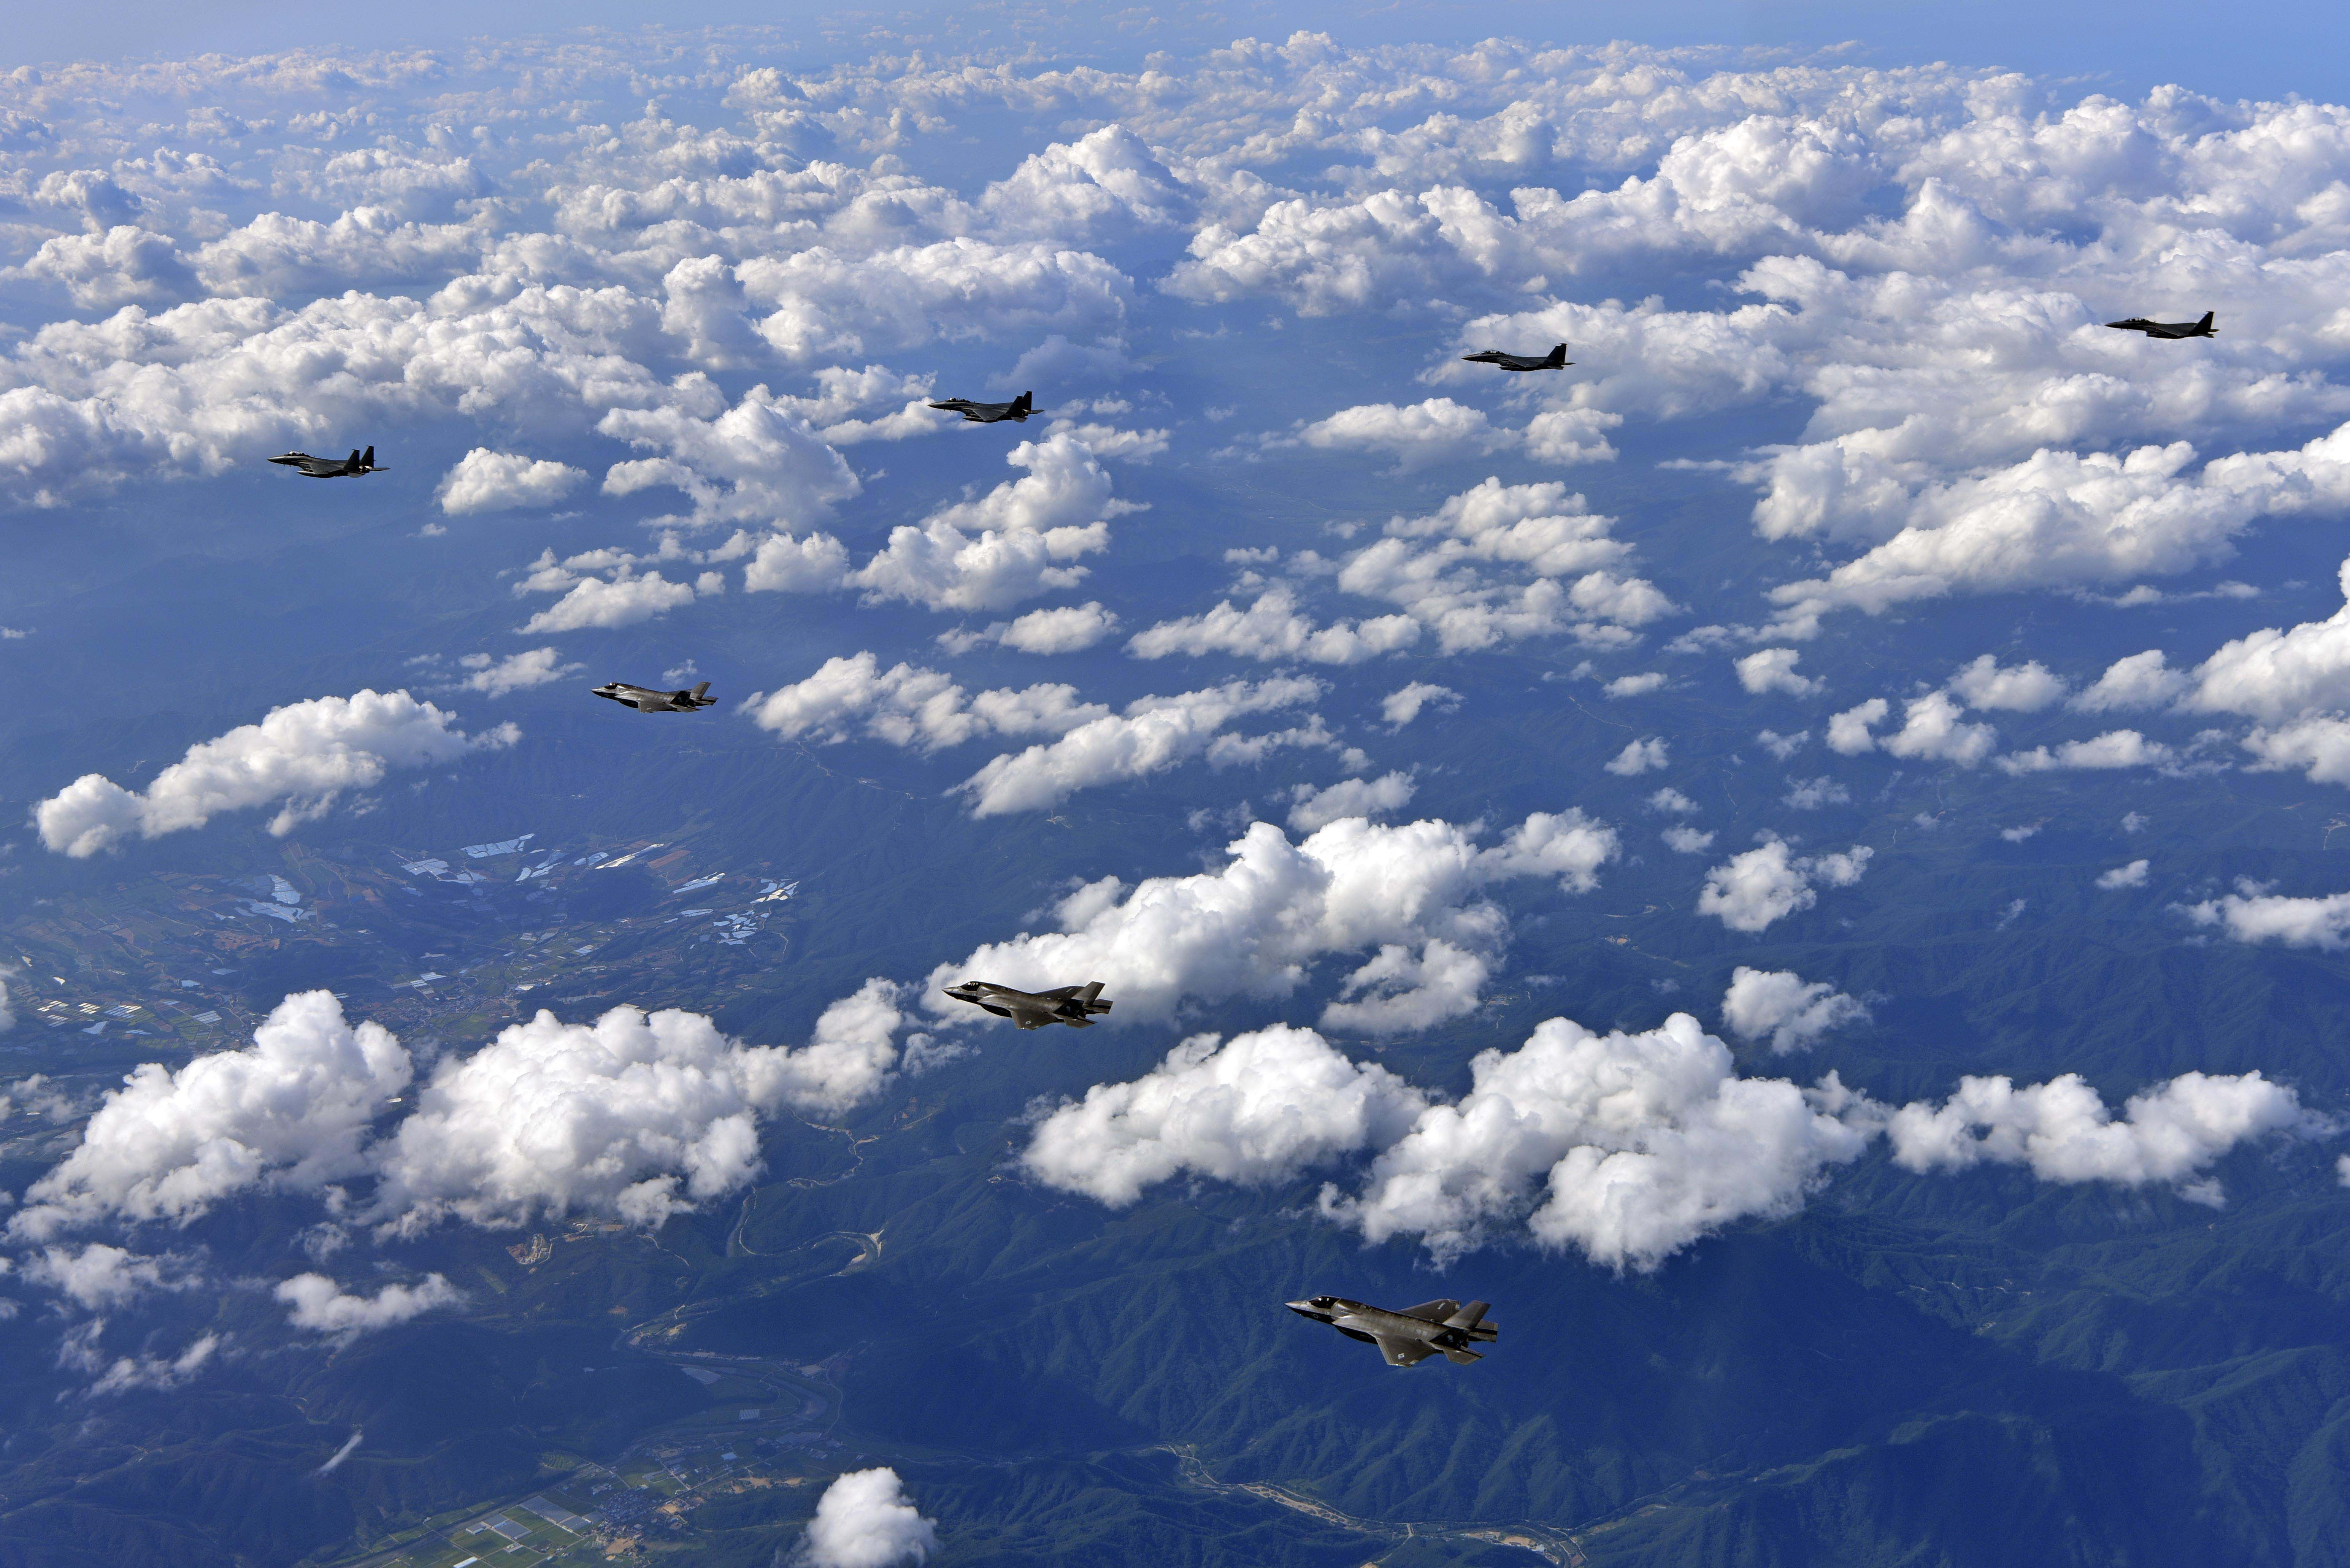 U.S. Marine Corps' F-35B Lightning II fighters assigned to the Marine Corps Air Station Iwakuni, Japan are joined by South Korean Air Force F-15K fighters during a 10-hour mission from Andersen Air Force Base, Guam, into Japanese airspace and over the Korean Peninsula on Aug. 30, 2017. (South Korea Defense Ministry via AP)